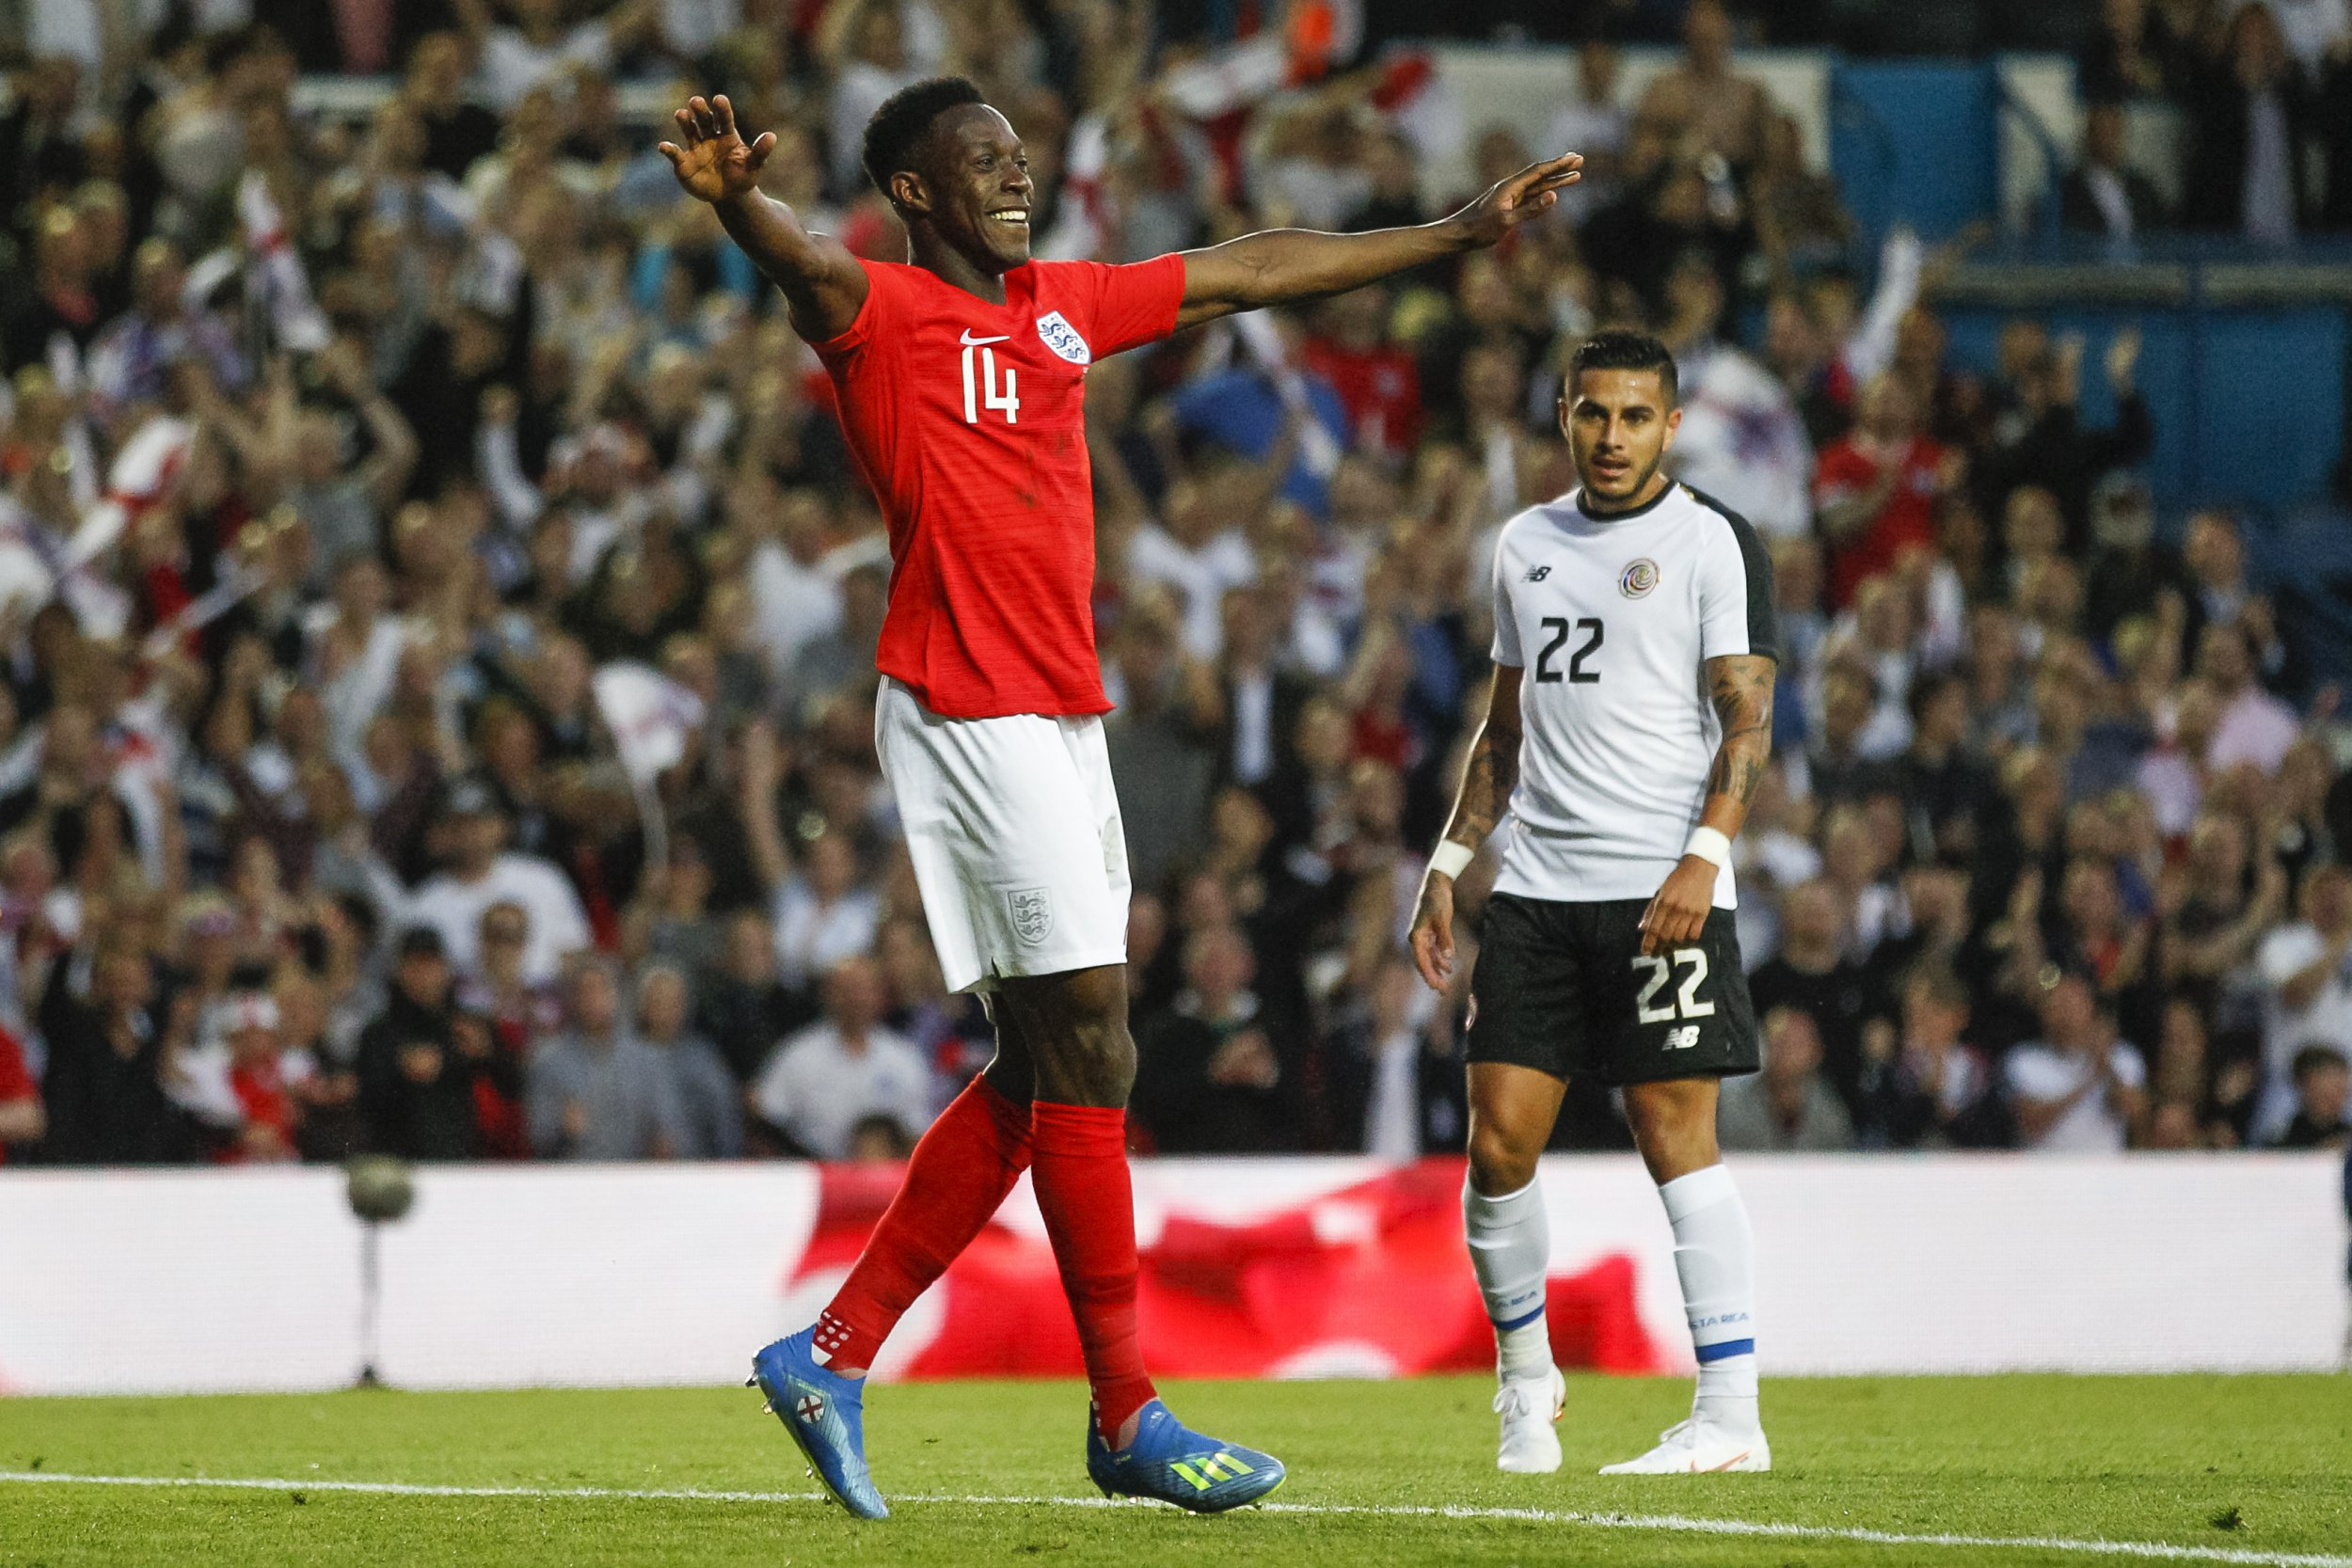 Danny Welbeck of England celebrates after scoring his side's second goal to make the score 2-0 during the International Friendly match between England and Costa Rica at Elland Road on June 7th 2018 in Leeds, England. (Photo by Daniel Chesterton/phcimages.com)